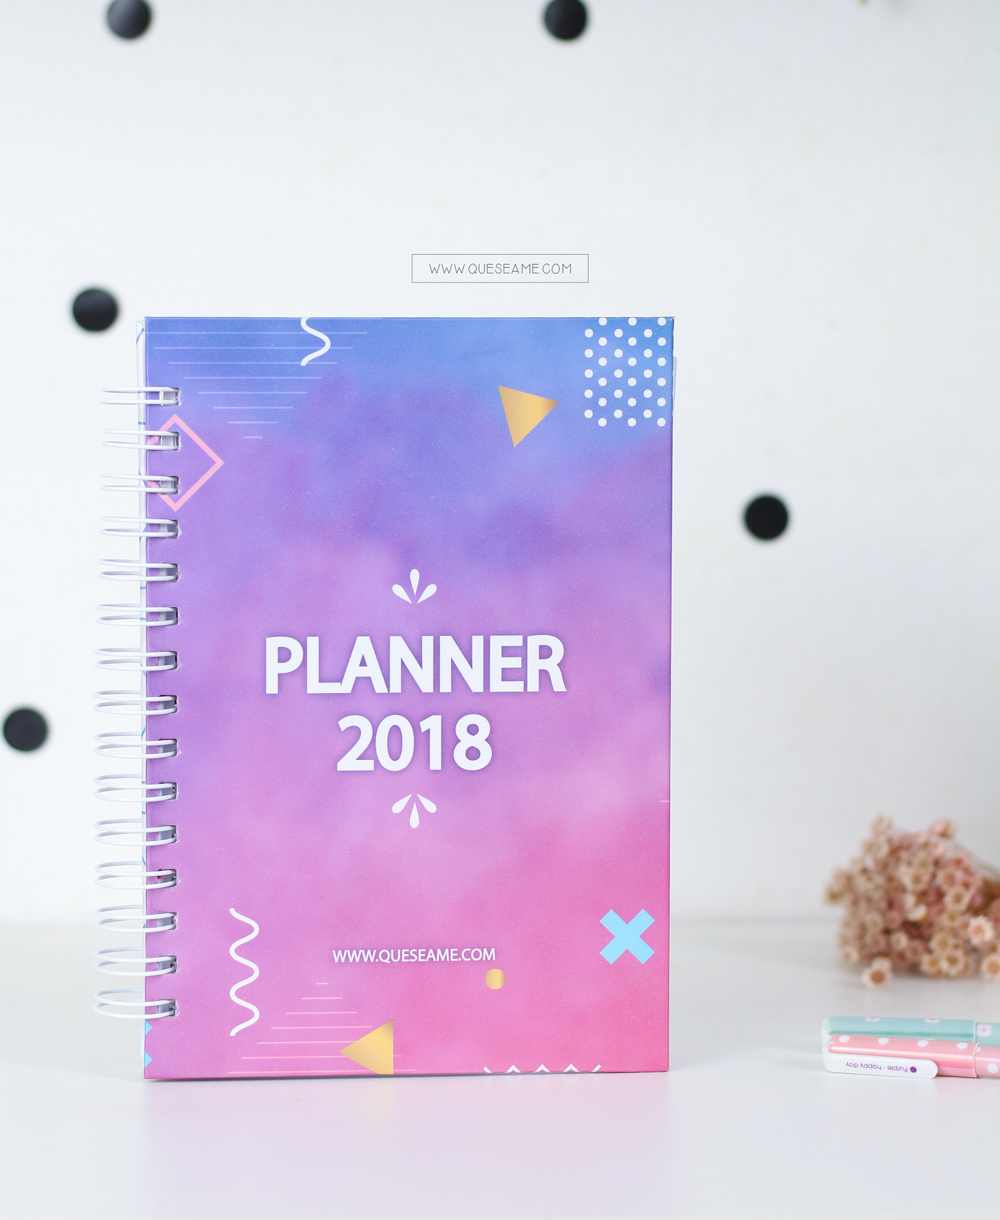 planner, planner 2018, planner 2018 para download, planner 2018 para baixar, journey planner, trip planner, planner 2017, 2017 planner calendar, calendar planner, calendar, 2017 calendar, 2018 calendar, 2018 planner calendar, planner for 2018, year planner 2018, 2018 printable planner, printable planner, 2018 calendar, 2018 planners, 2018 monthly planner, planners, agenda 2018, happy planner 2018, 2018 agenda planner, happy planner, travel planner, daily planner, weekly planner, monthly planner, planning, daily planner agenda, agenda planner, daily planner printable, week planner, printable planner, free printable planner, personal planner, travel planner, trip planner, free planner, best personal planner, caderno pontilhado, caderno pontilhado comprar, planner case, , planner para baixar, download planner, agendas, agenda online, life planner, agenda online gratis, calendario mensal, planners, agenda planner comprar, agenda planner, planner agenda, baixar agenda